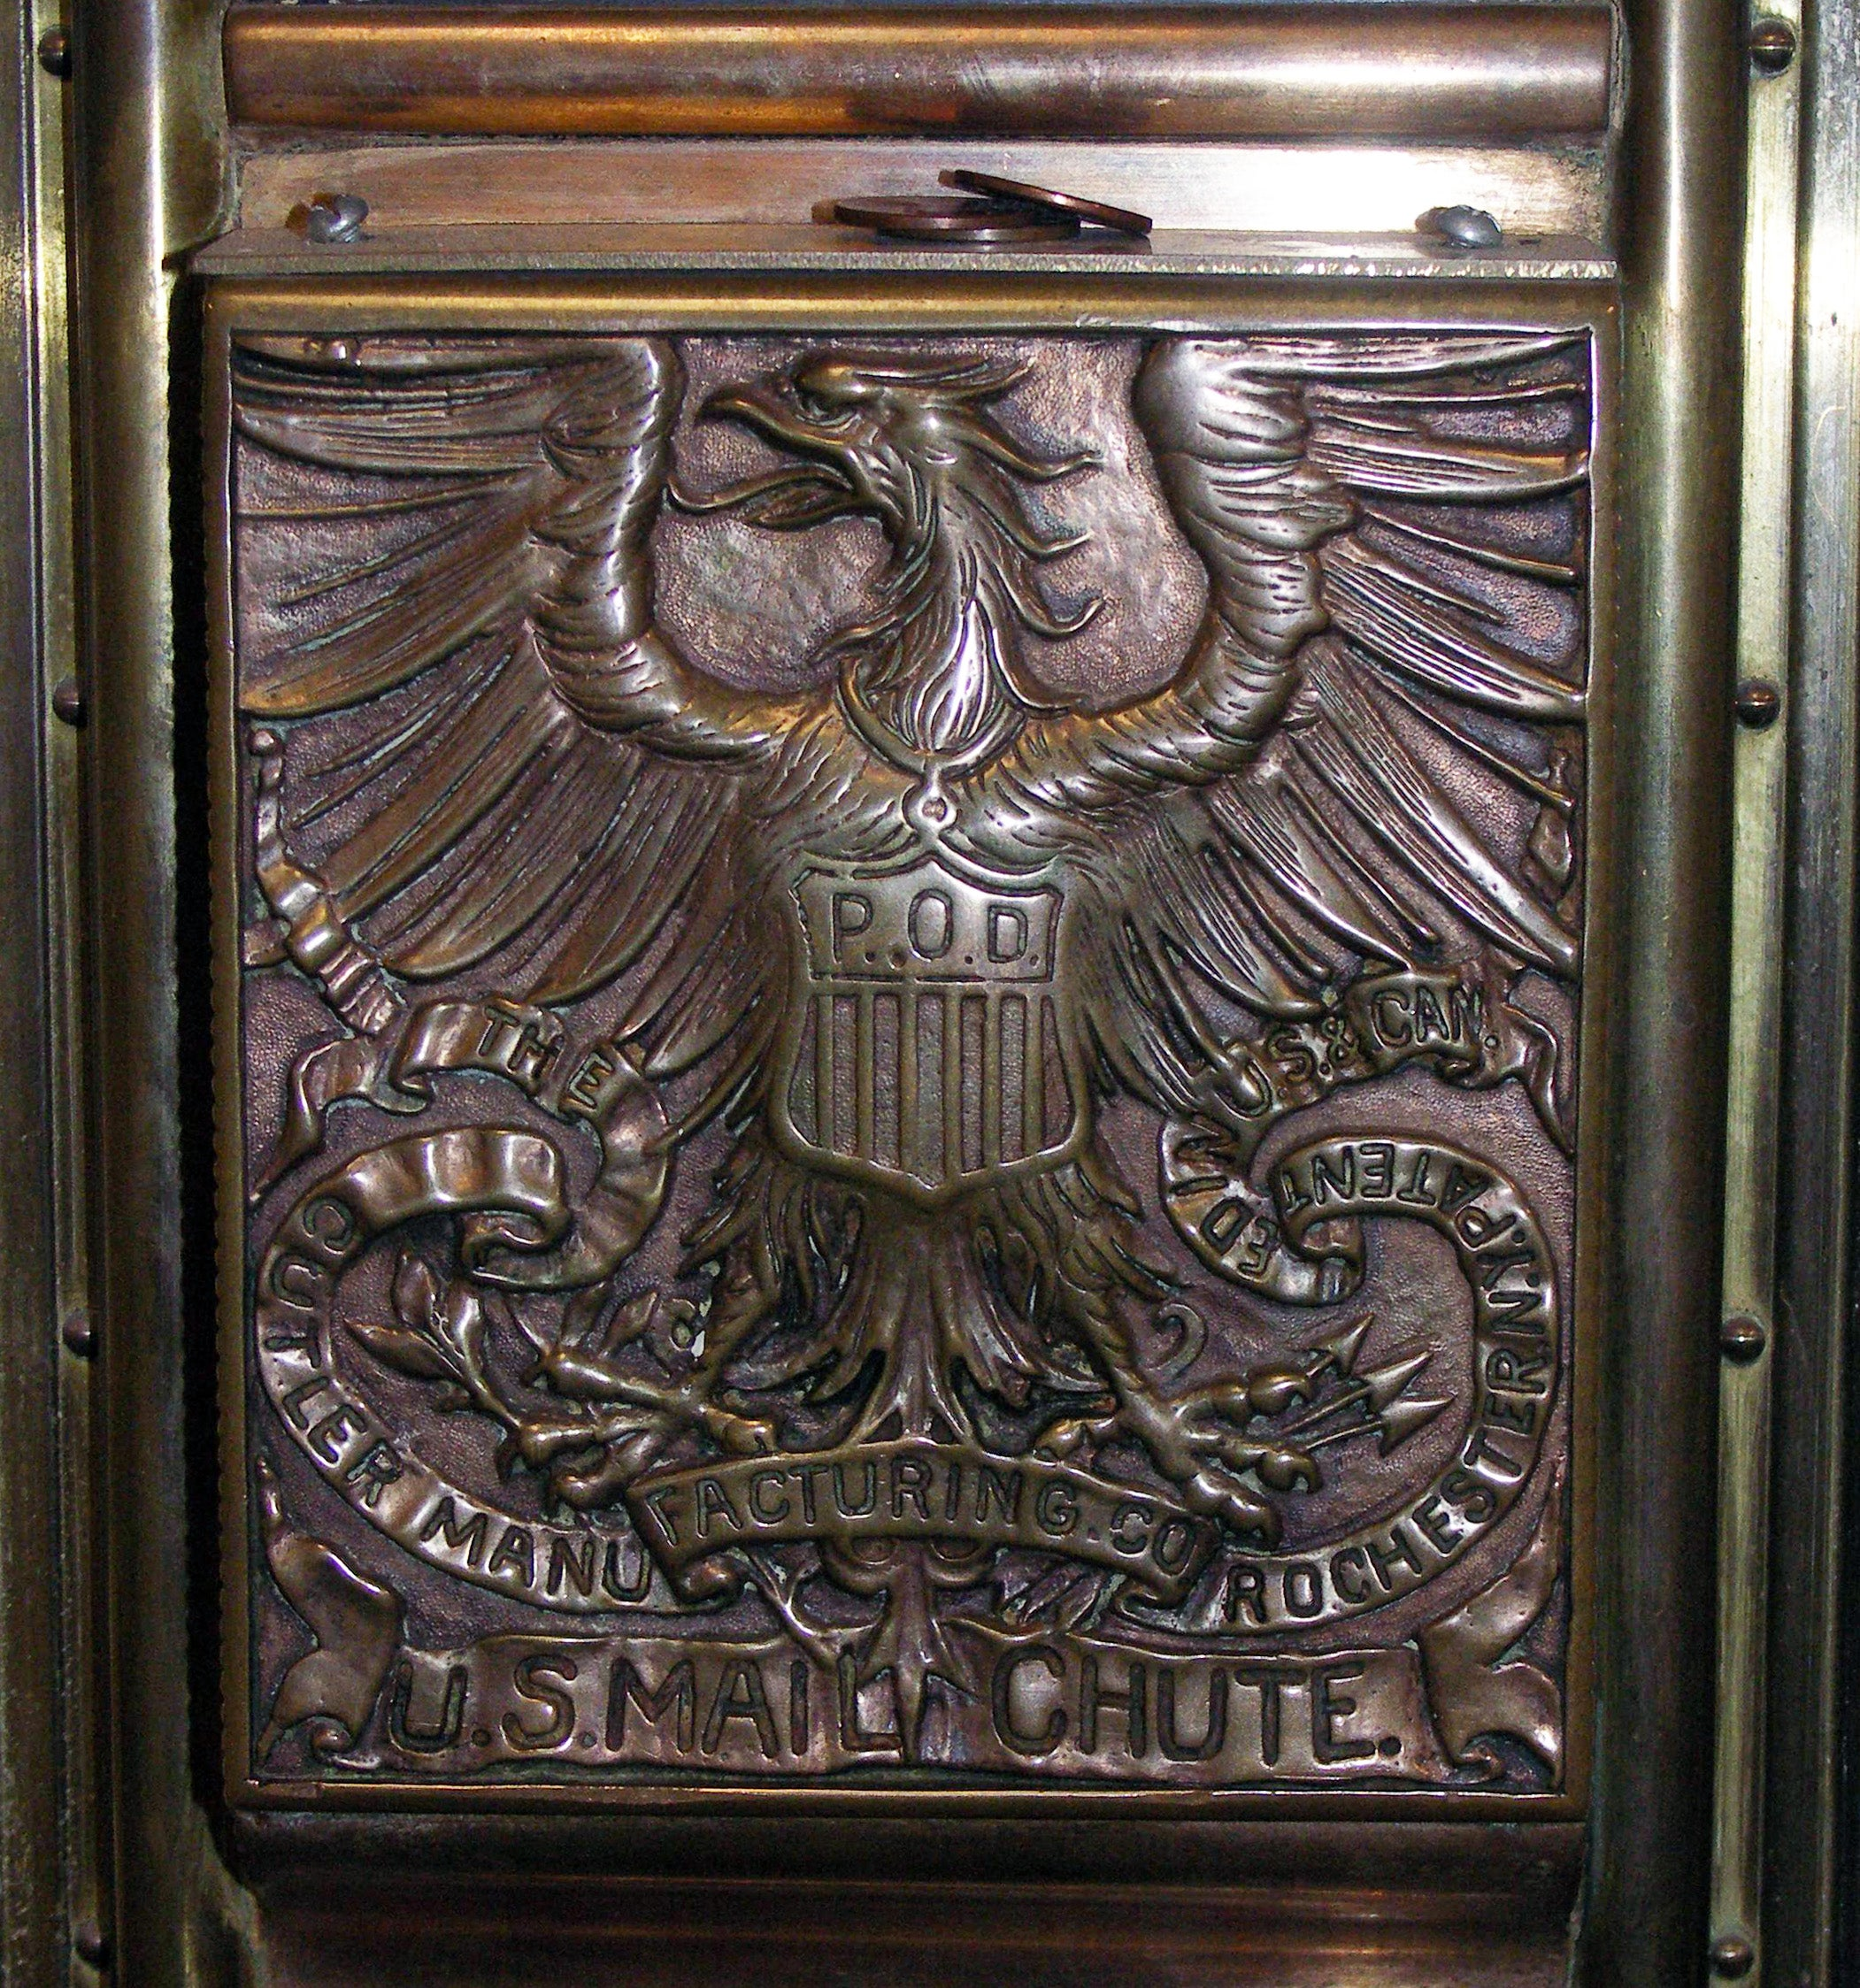 Feast Your Eyes on NYC's Remarkably Beautiful Mail Chutes